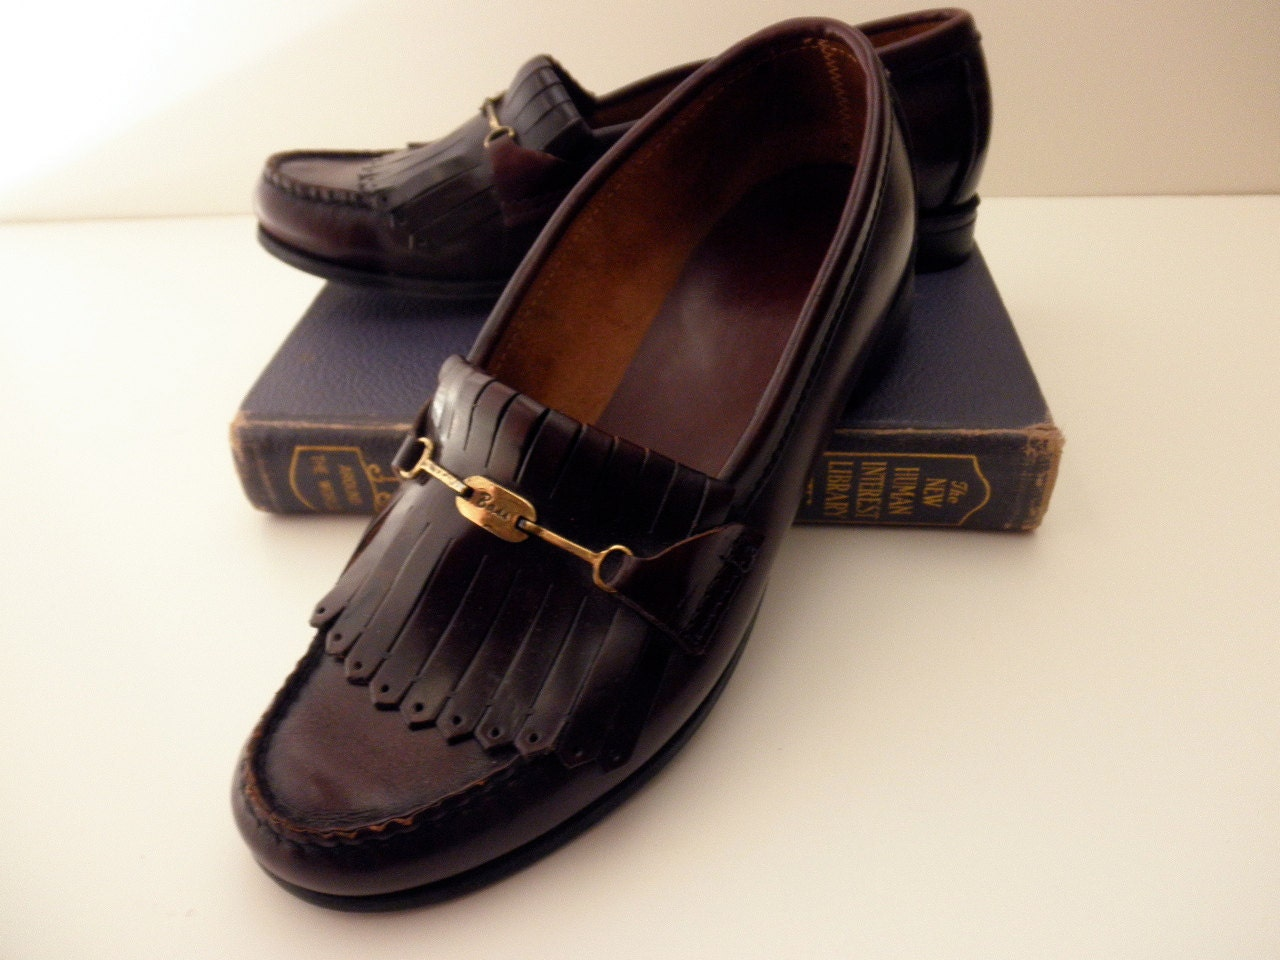 vintage Bass burgundy penny loafers-women's size 7 C